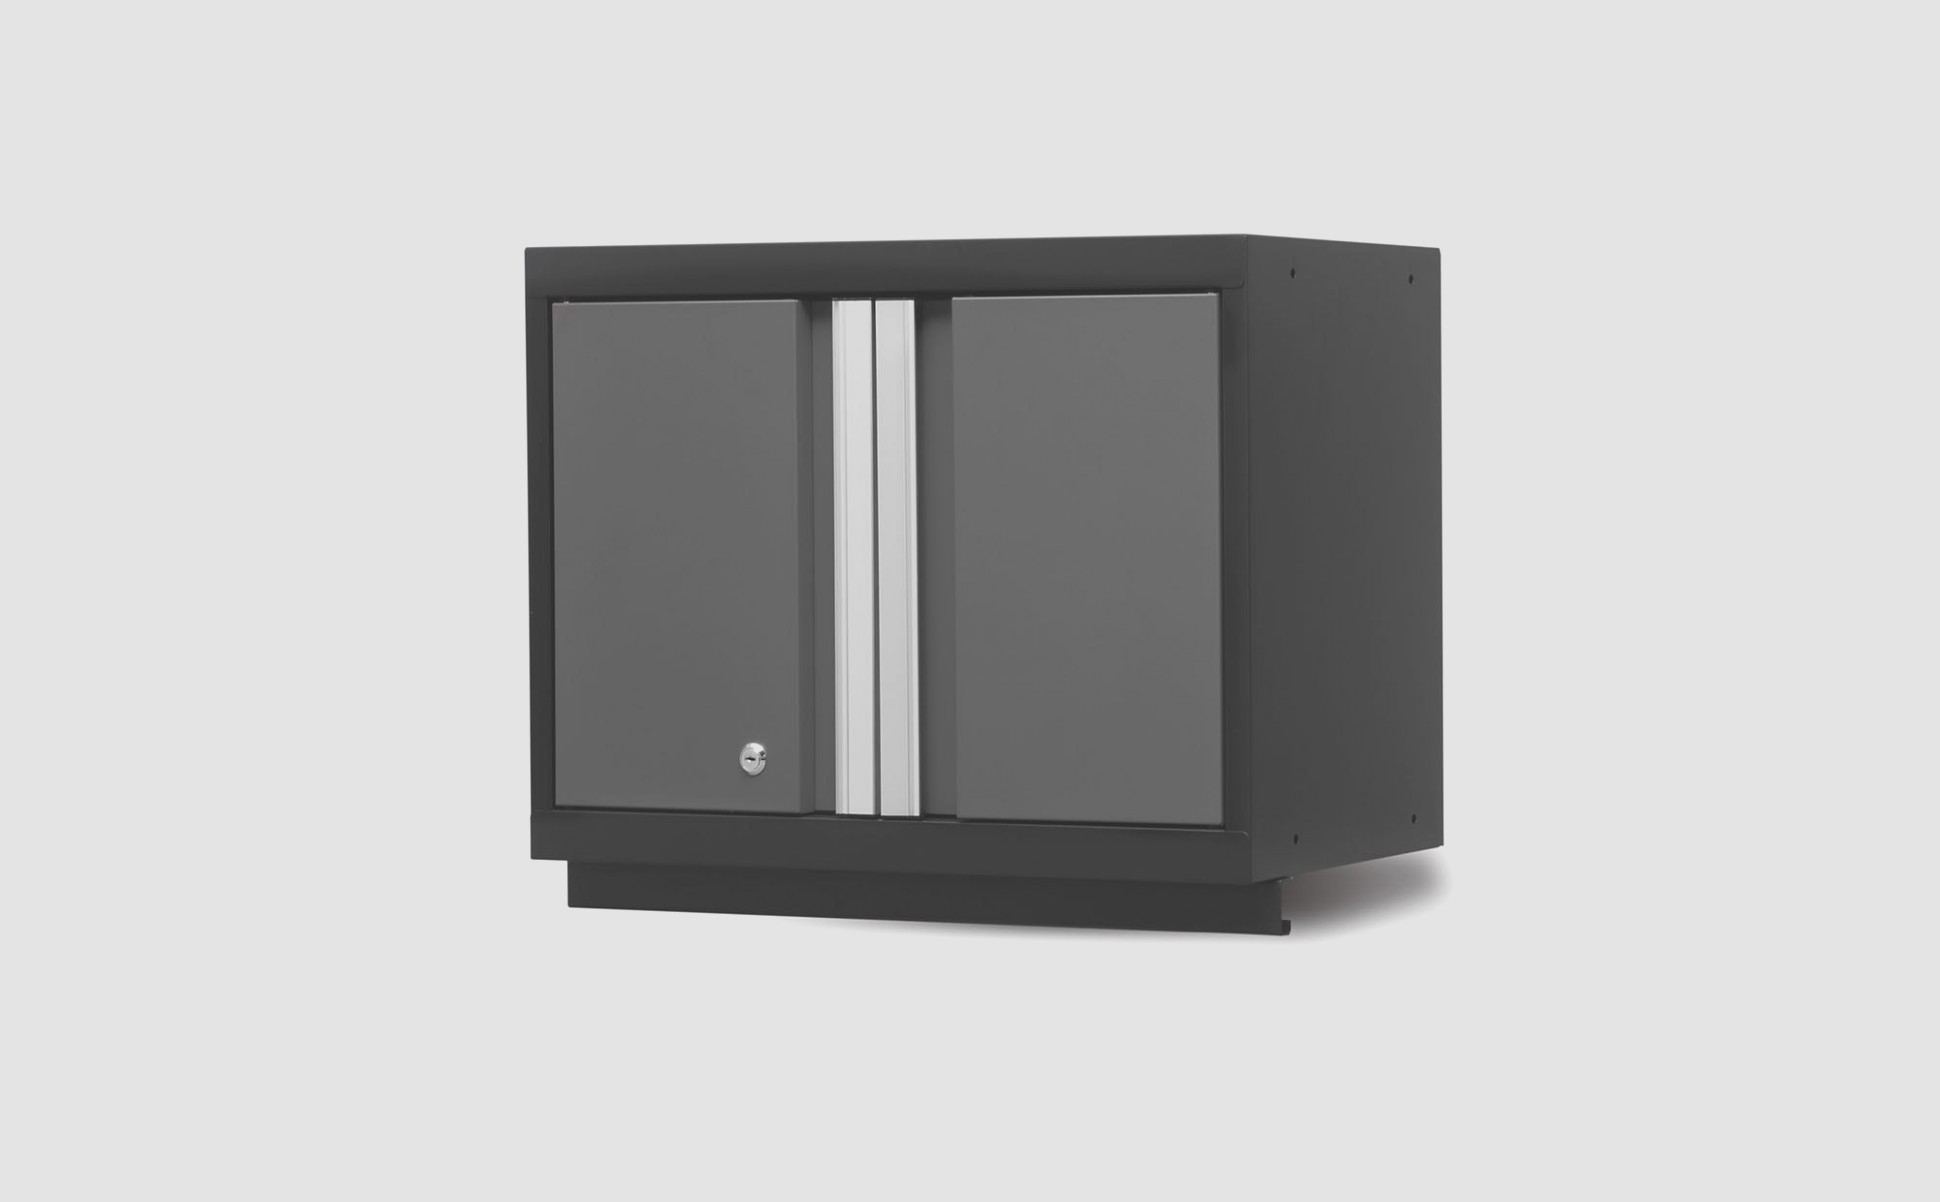 1 X 1 Wall Cabinet